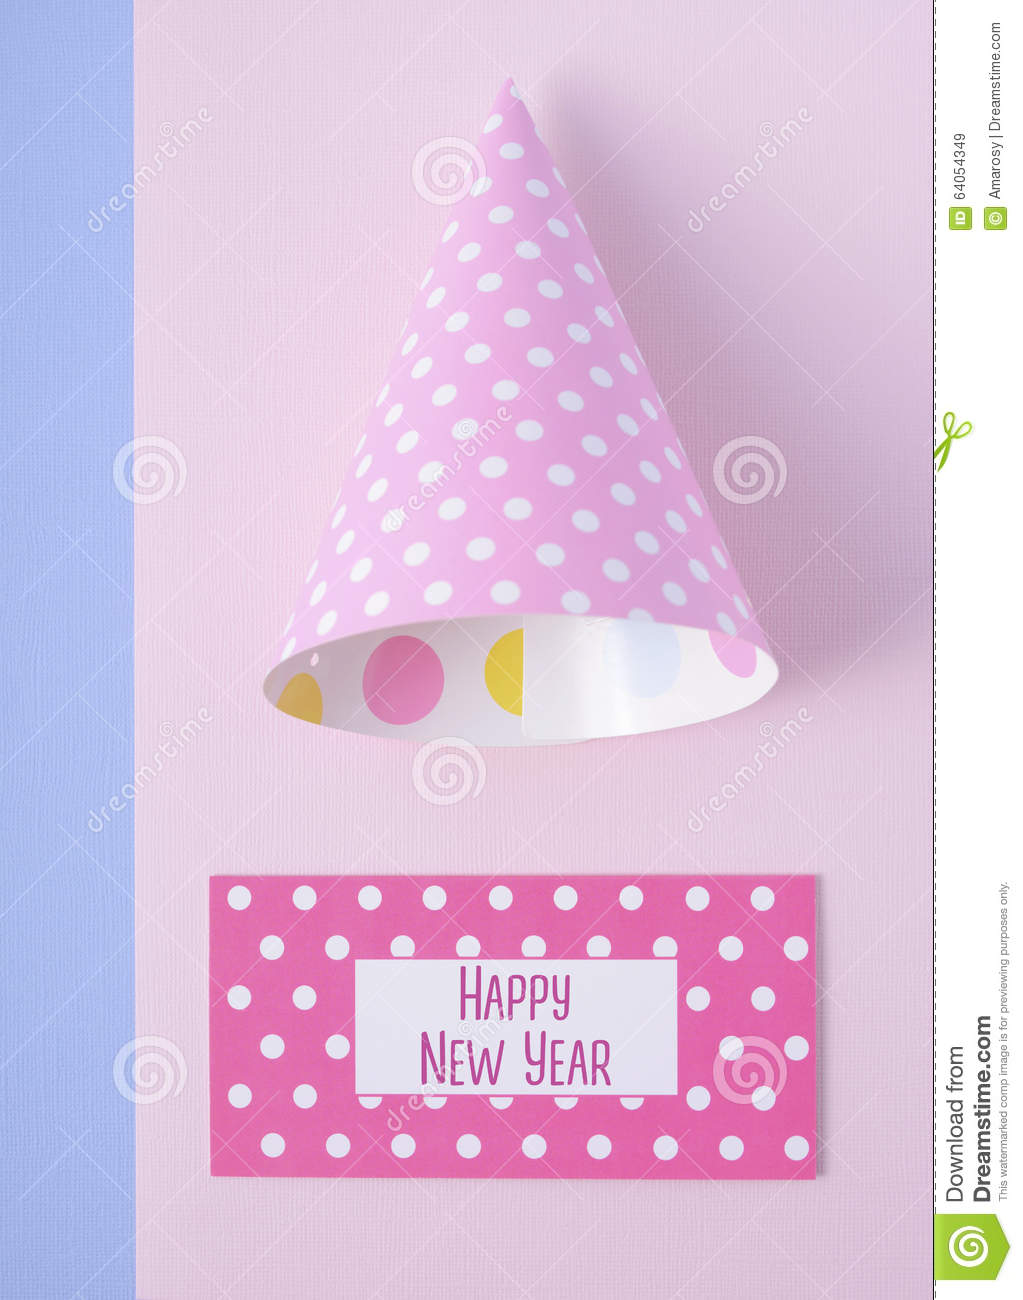 modern overhead happy new year party decorations in pink and blue theme with greeting text